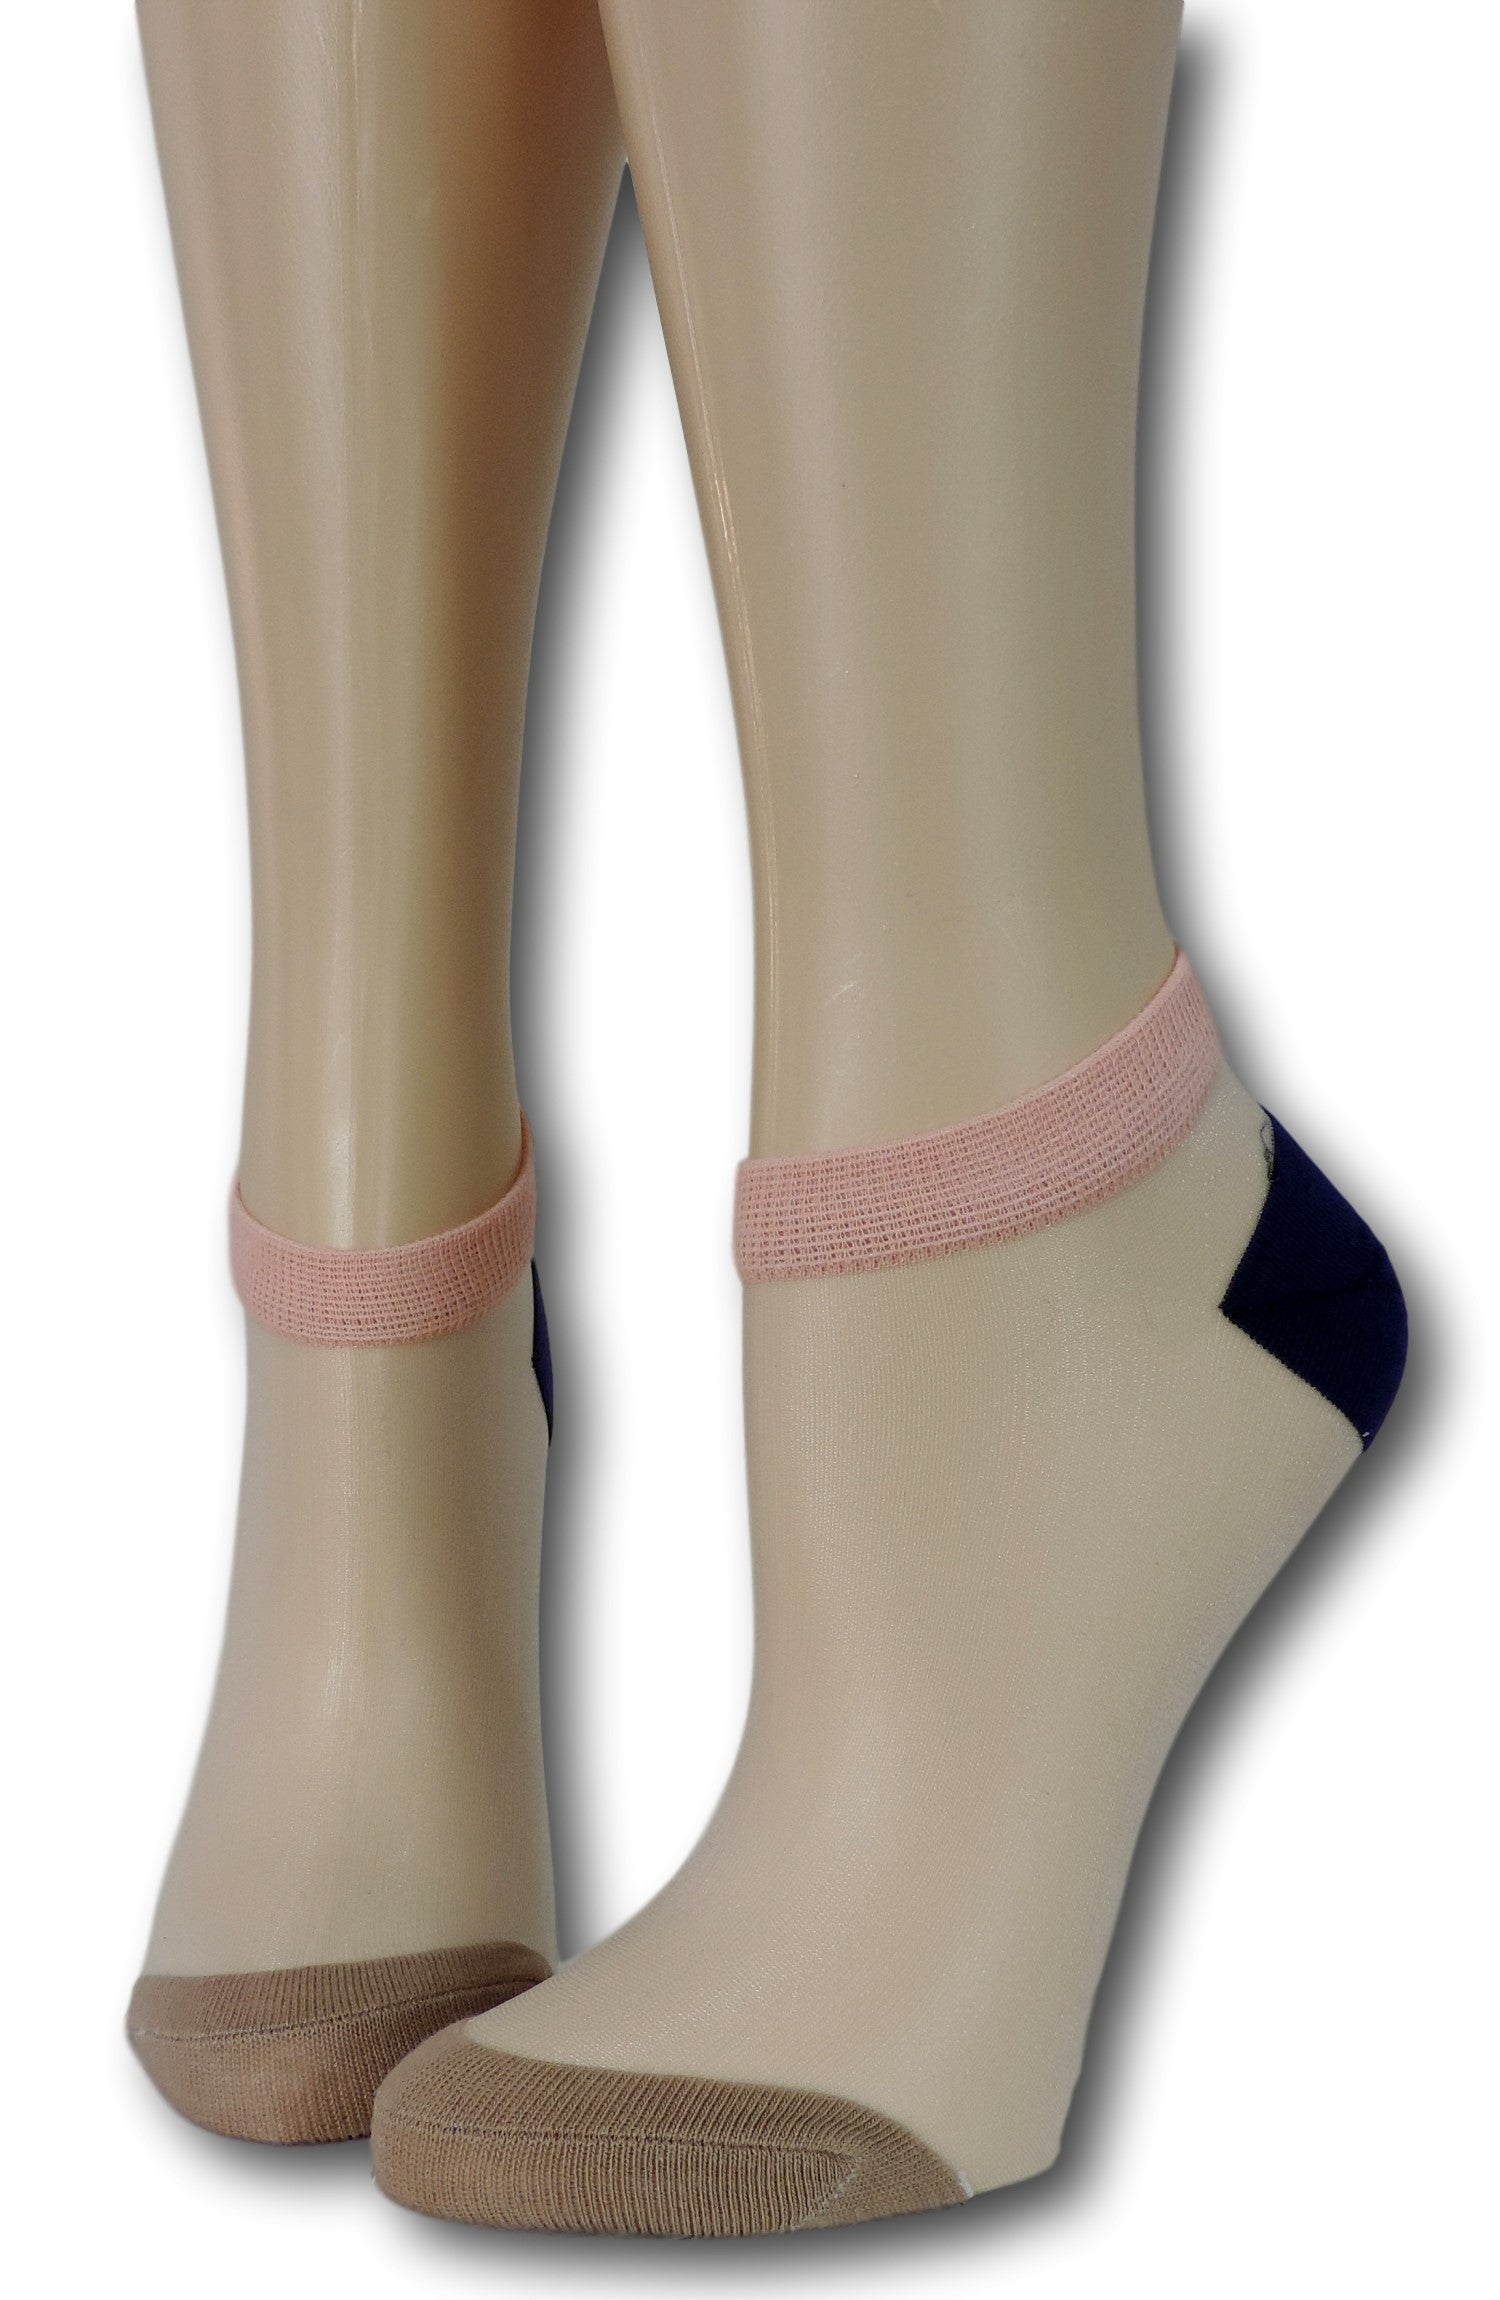 Brown-Black Ankle Sheer Socks